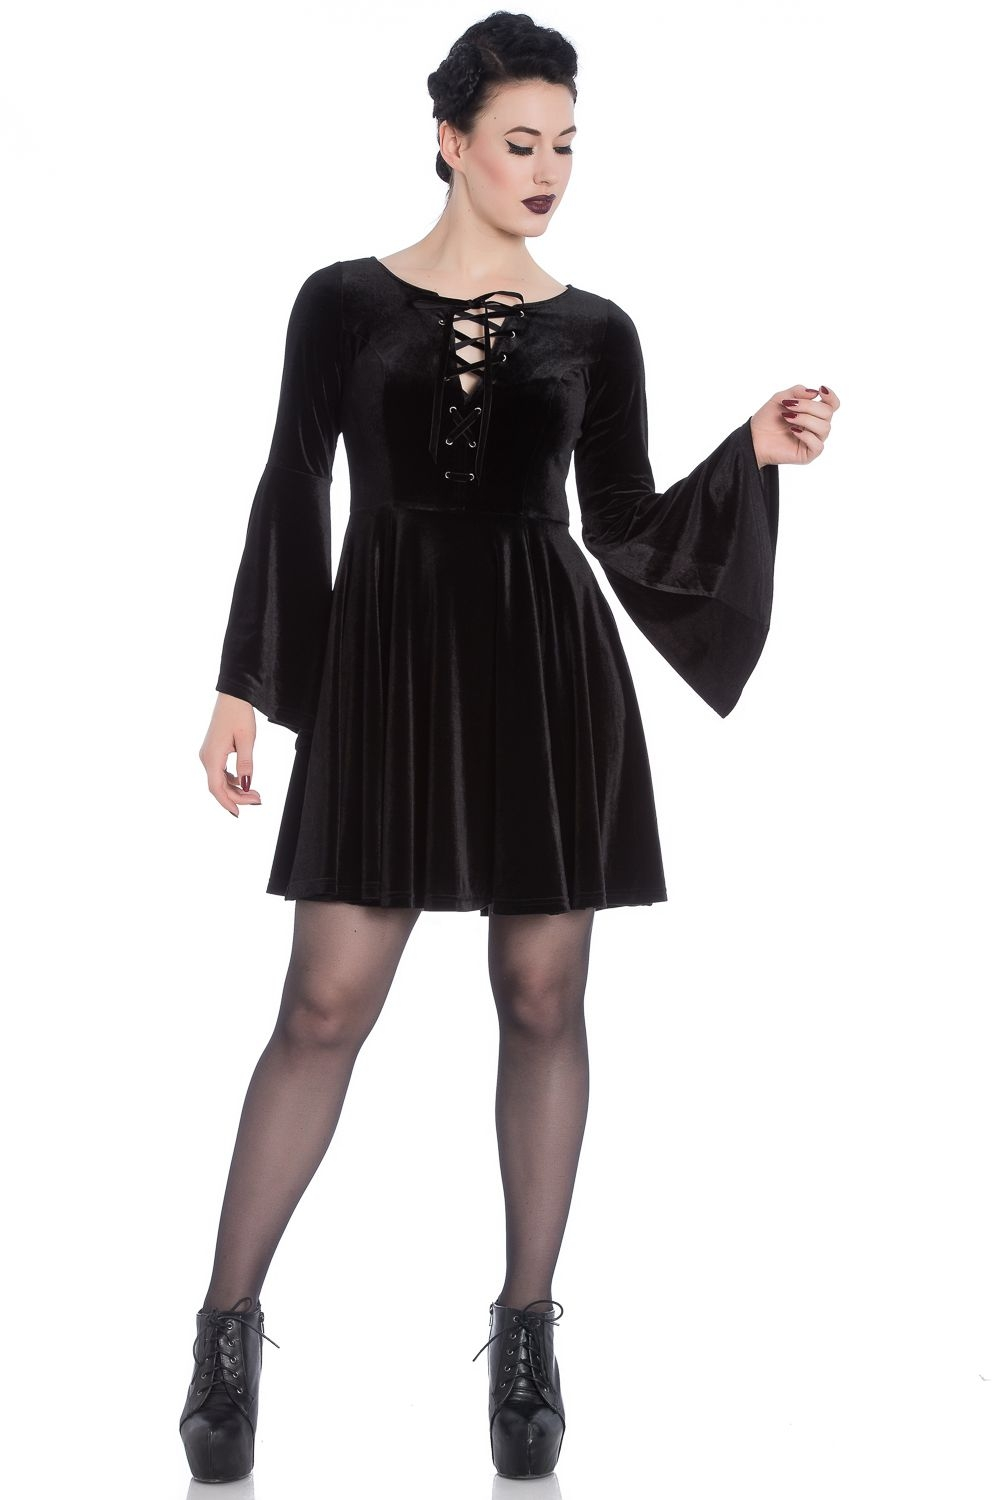 ps4751_mini-robe-gothique-glam-rock-boho-witch-willow